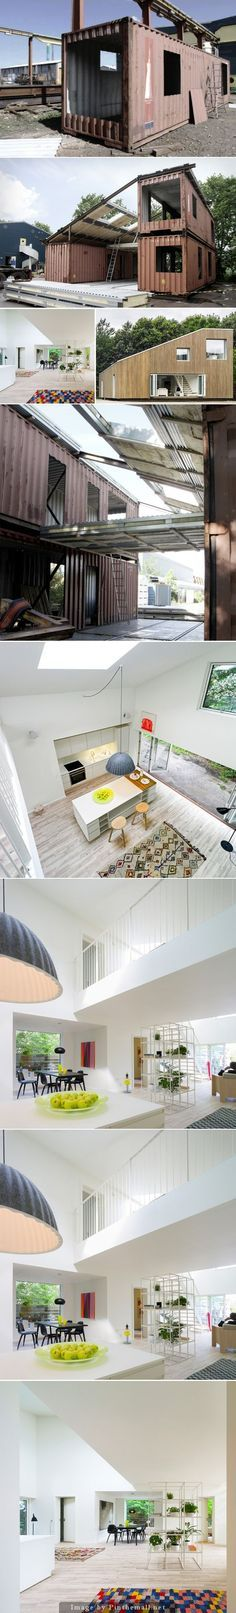 Upcycled Shipping Container House - Find out how to create one here http://howtobuildashippingcontainerhome.blogspot.com/